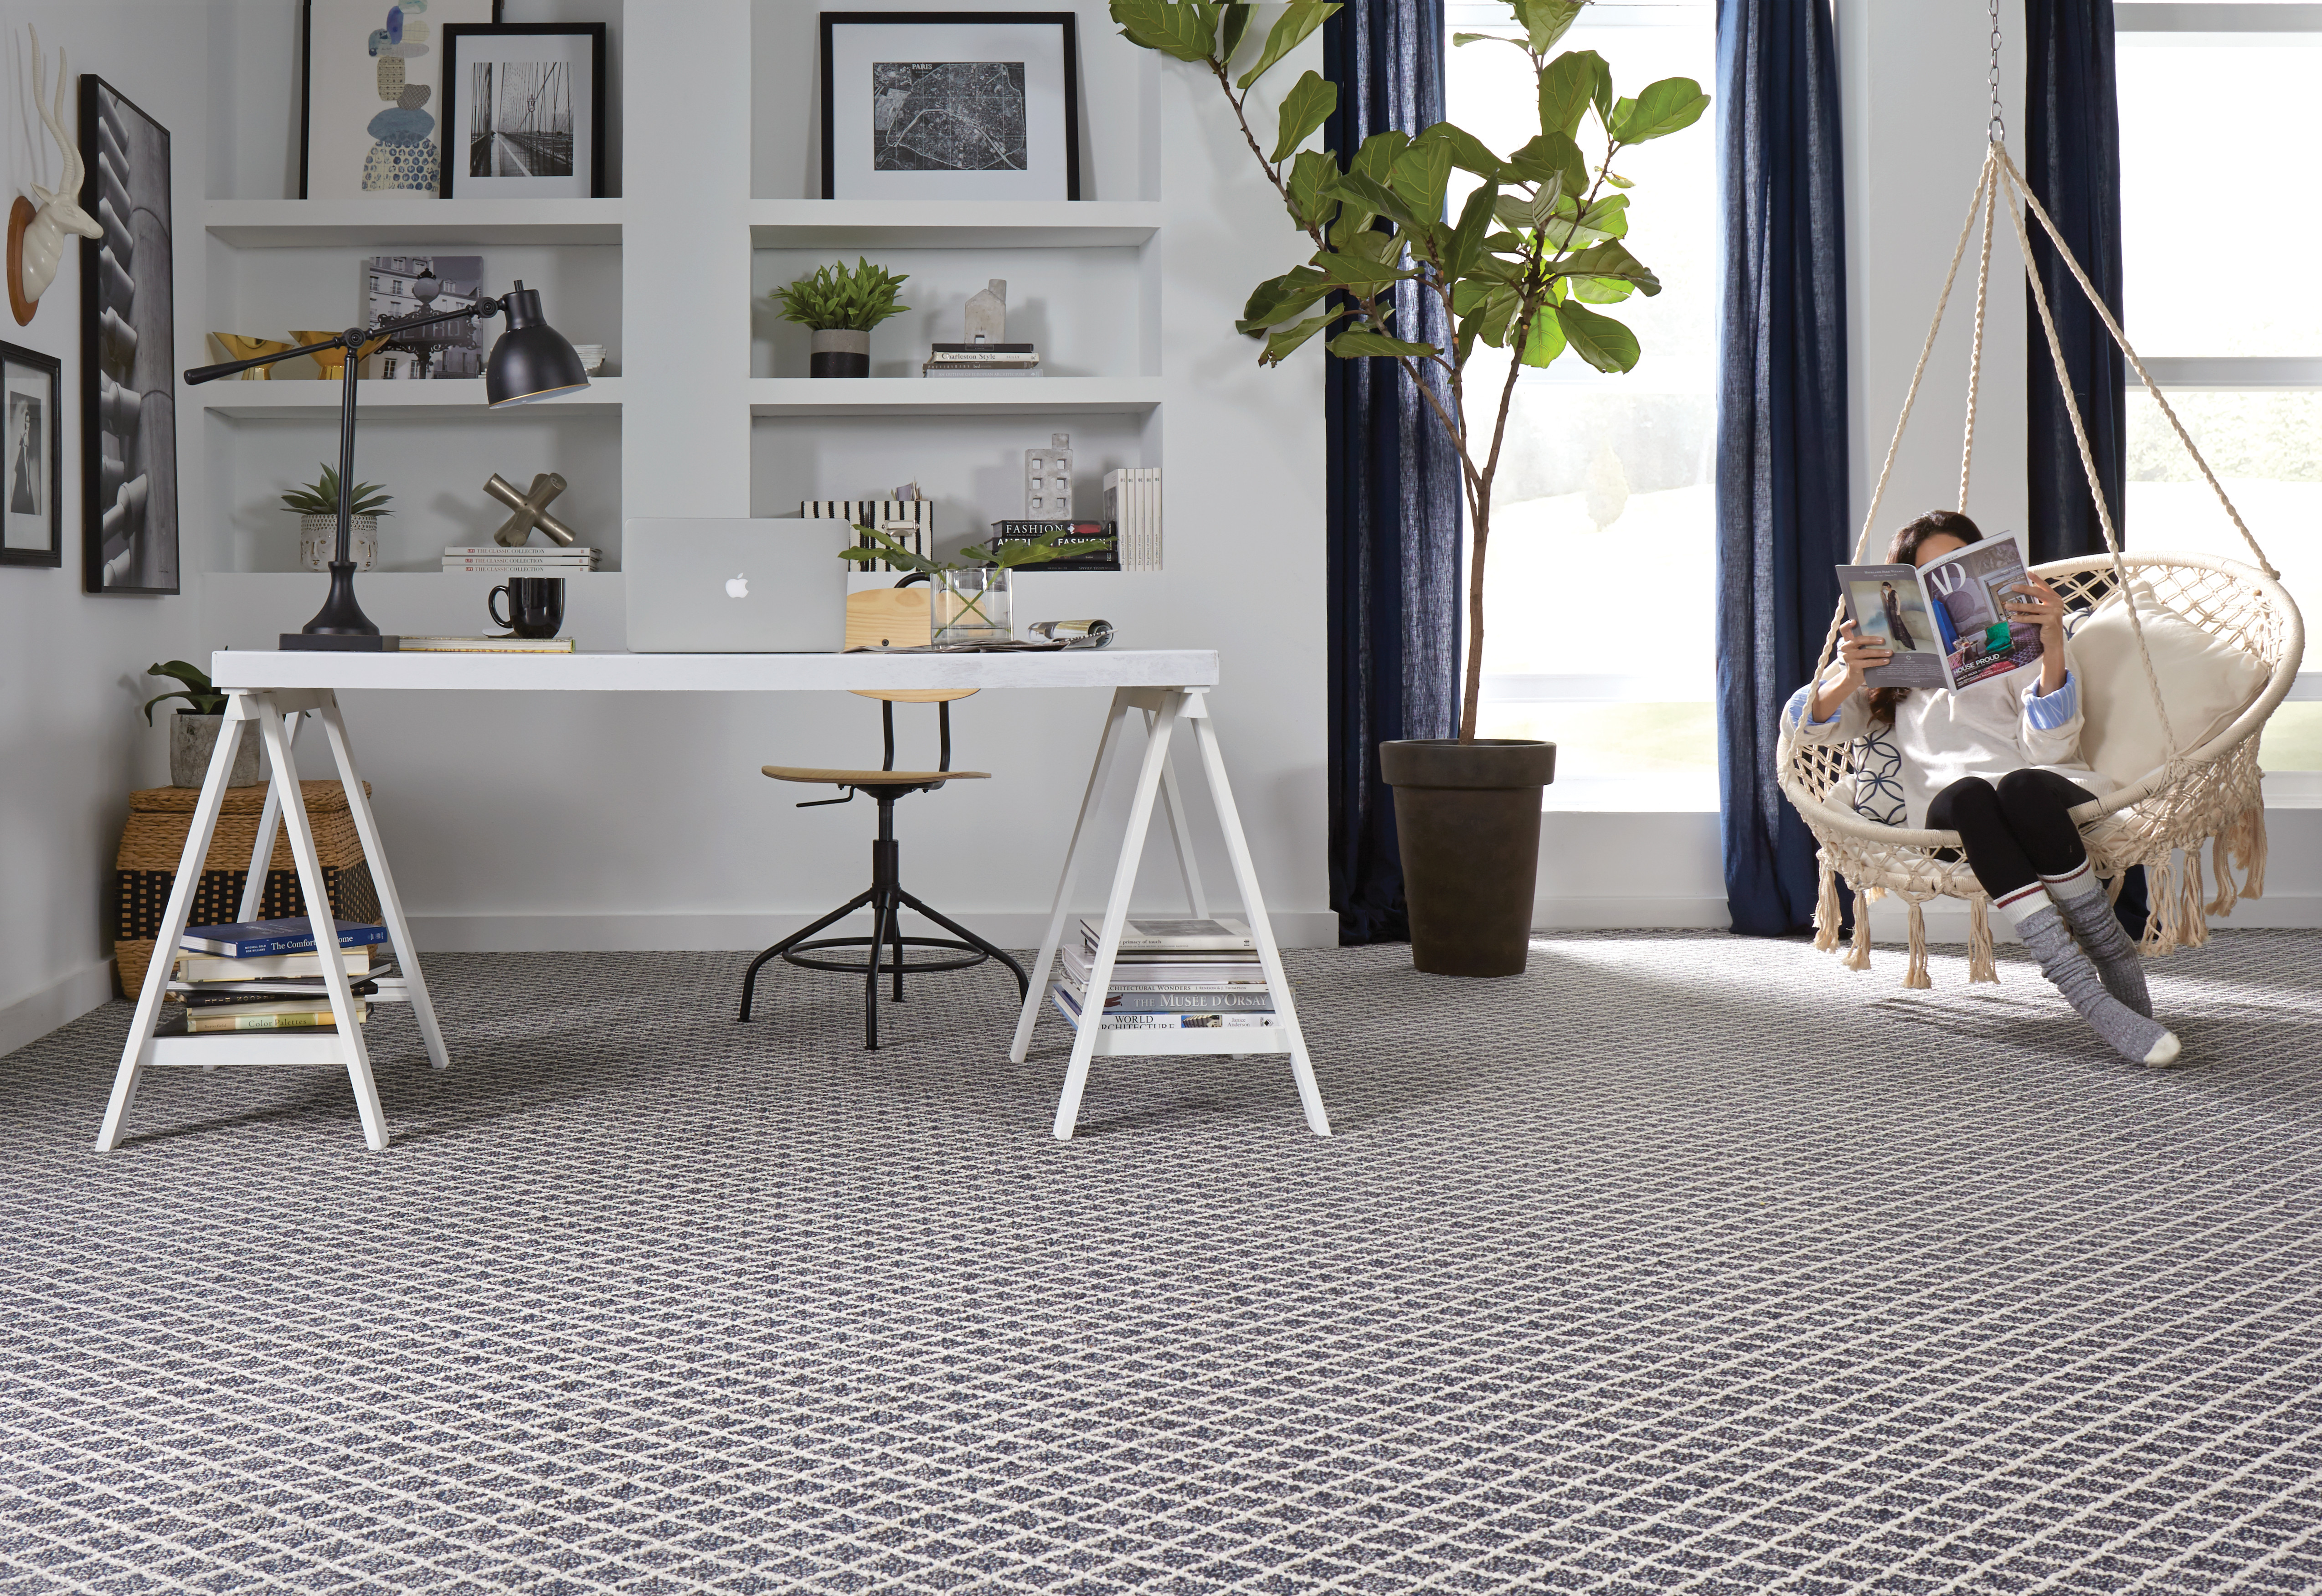 Springers Point Seaport Blue Carpeting | Carpets And More, Inc